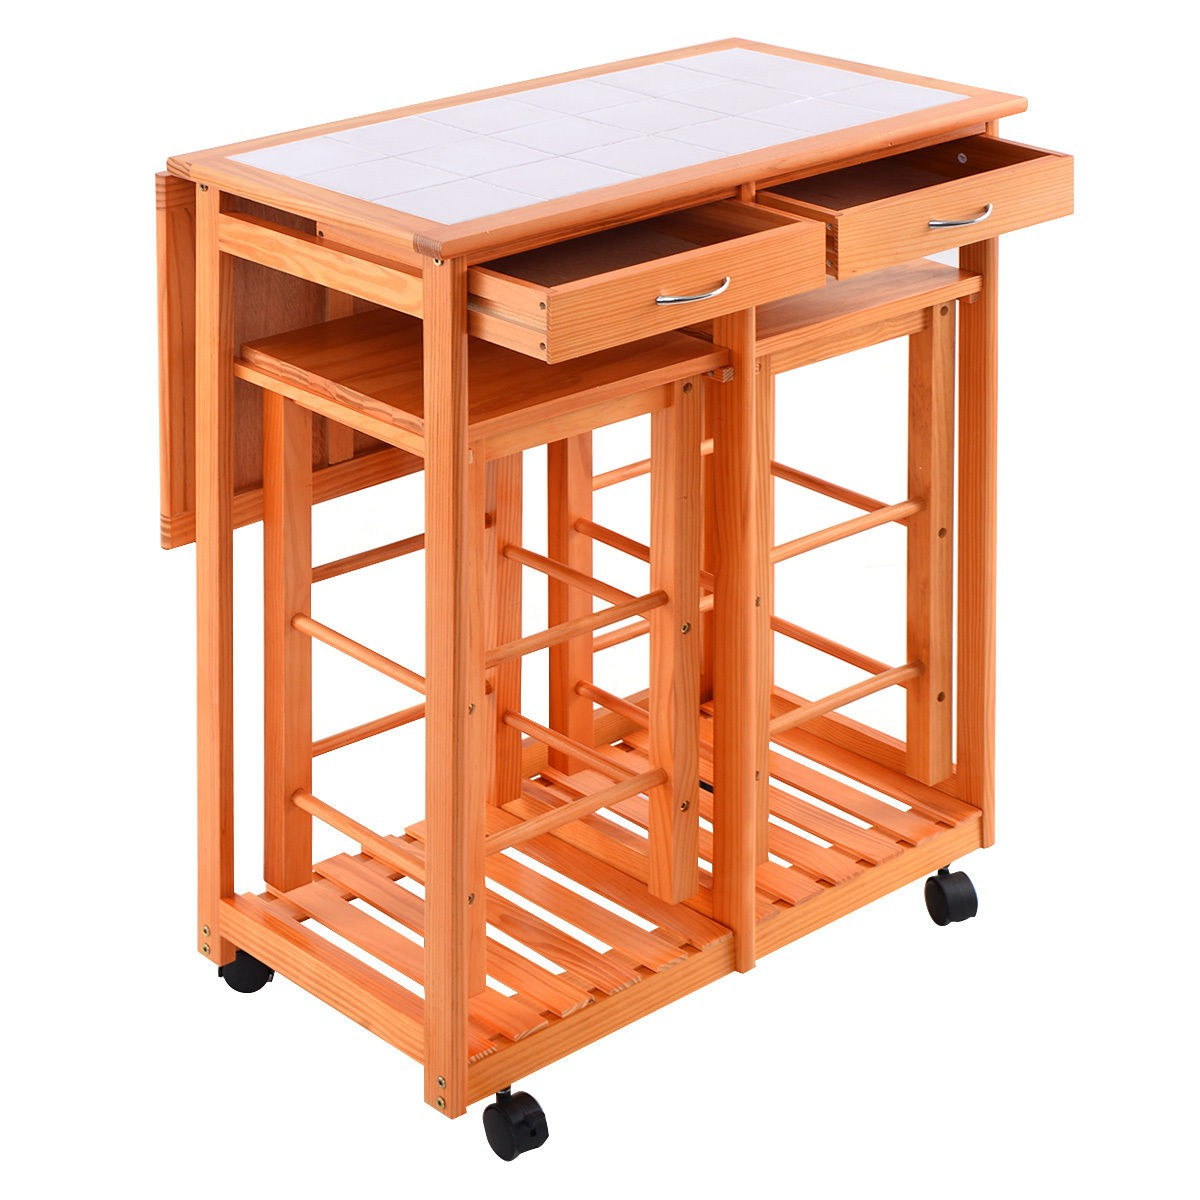 Us Portable Kitchen Rolling Cart Wood Island Serving: Rolling Kitchen Trolley Cart Island Drop Leaf Table W/ 2